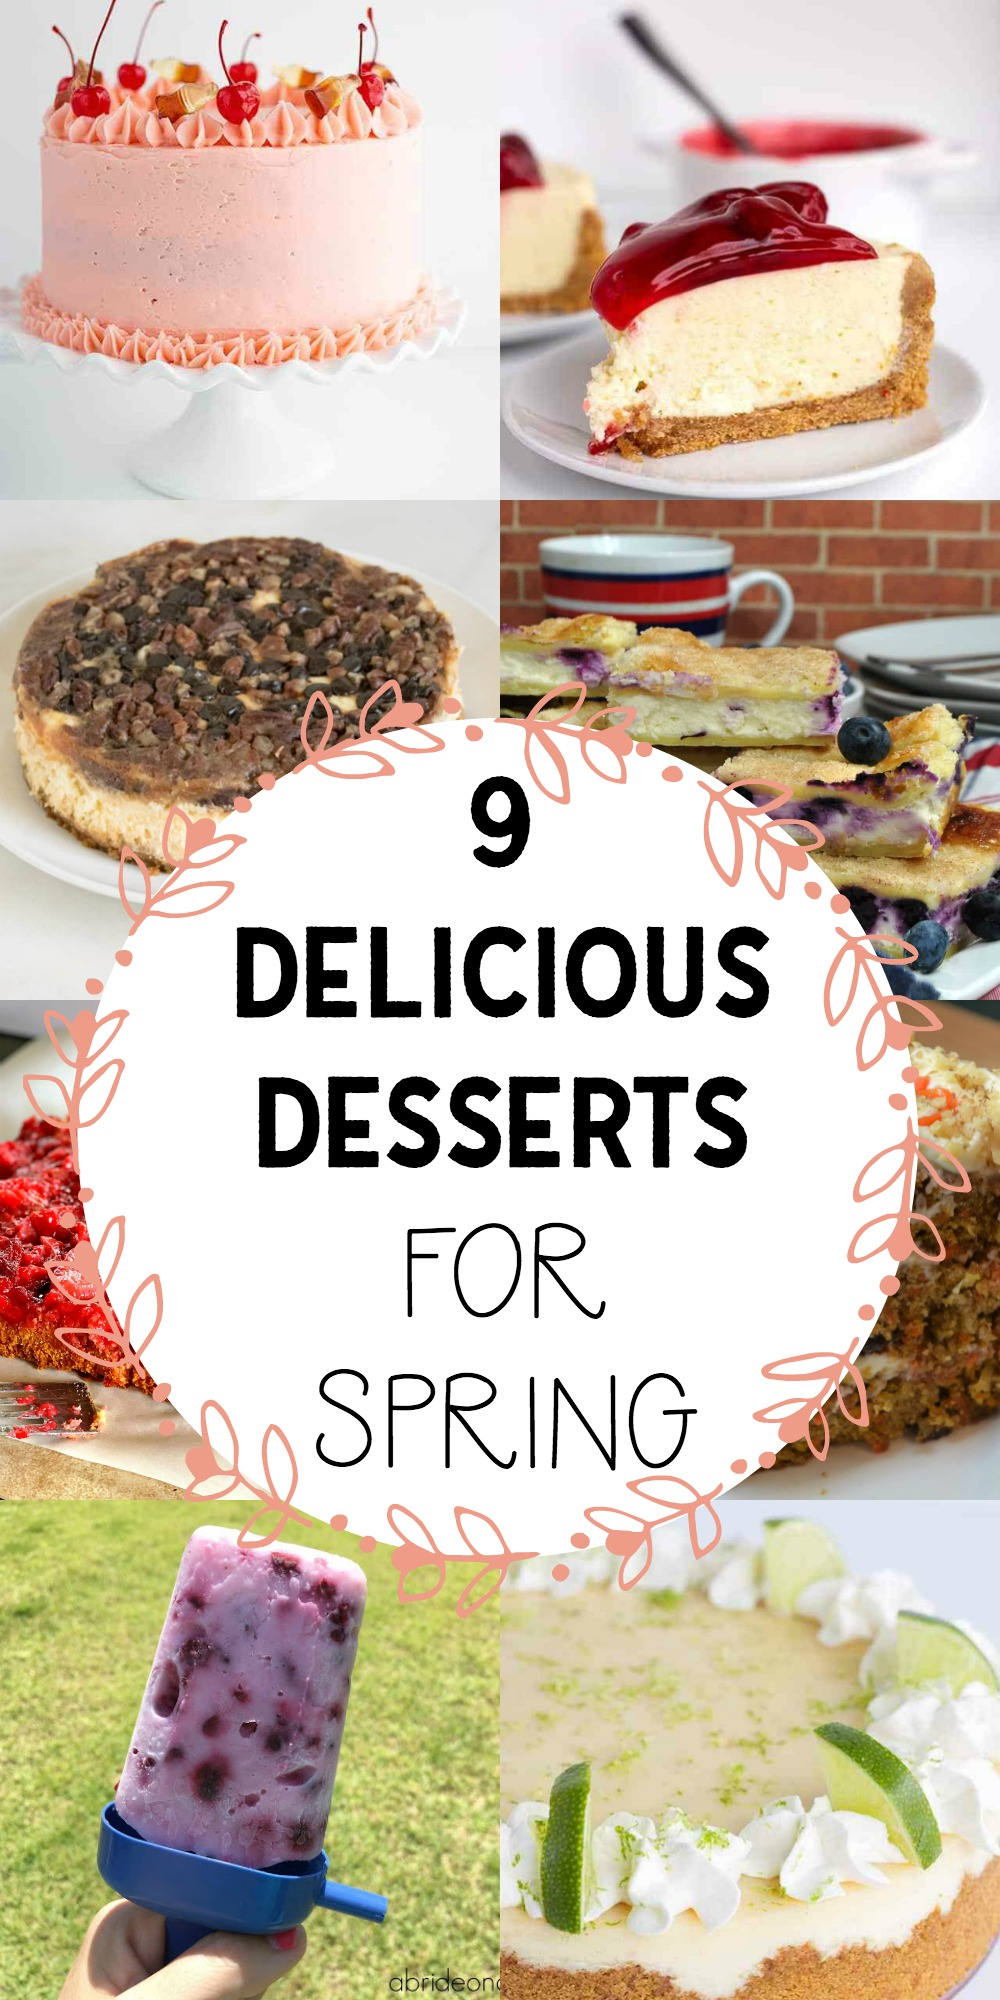 9 Delicious Desserts for Spring